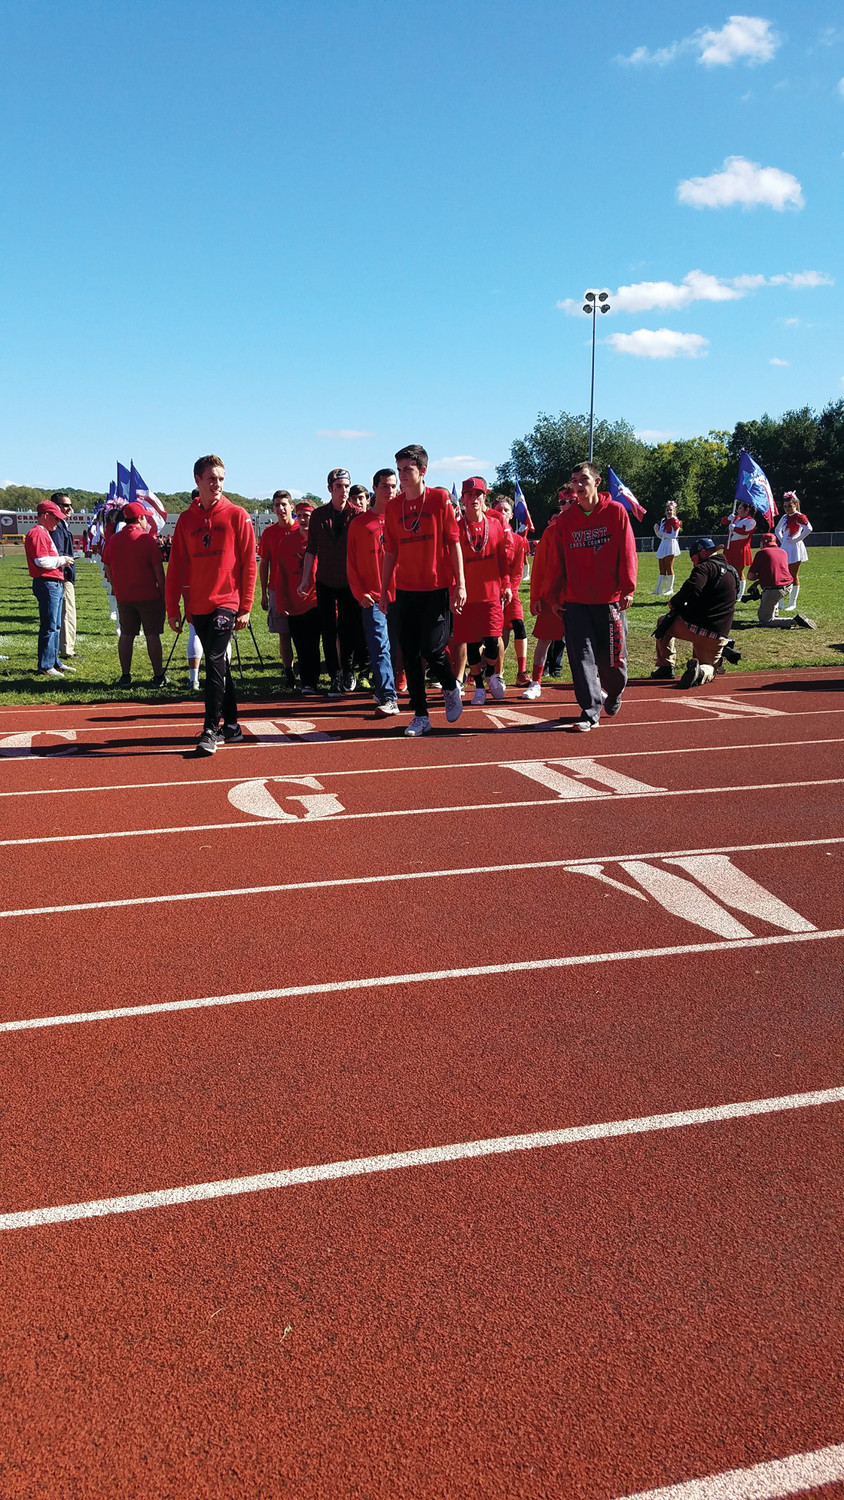 KEEP ON RUNNING: The Cranston West Boys Cross Country team was one of the fall sports teams spotlighted on the field at last week's pep rally.